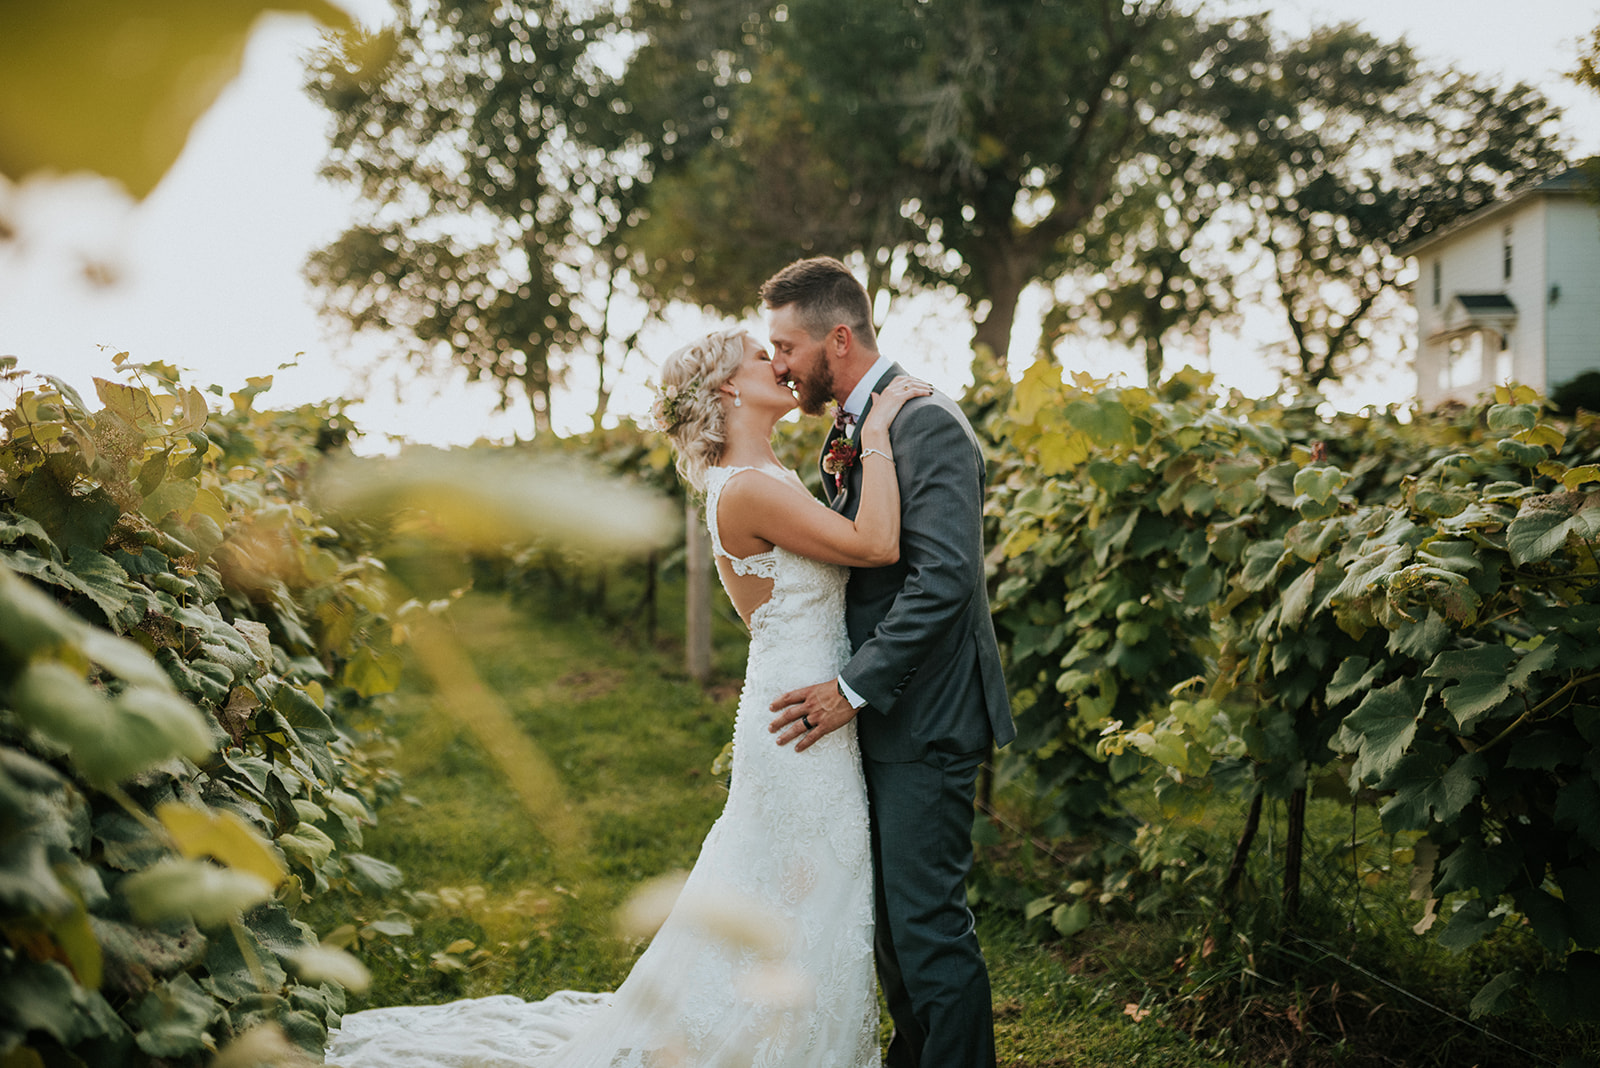 overthevineswisconsinwedding_0889.jpg